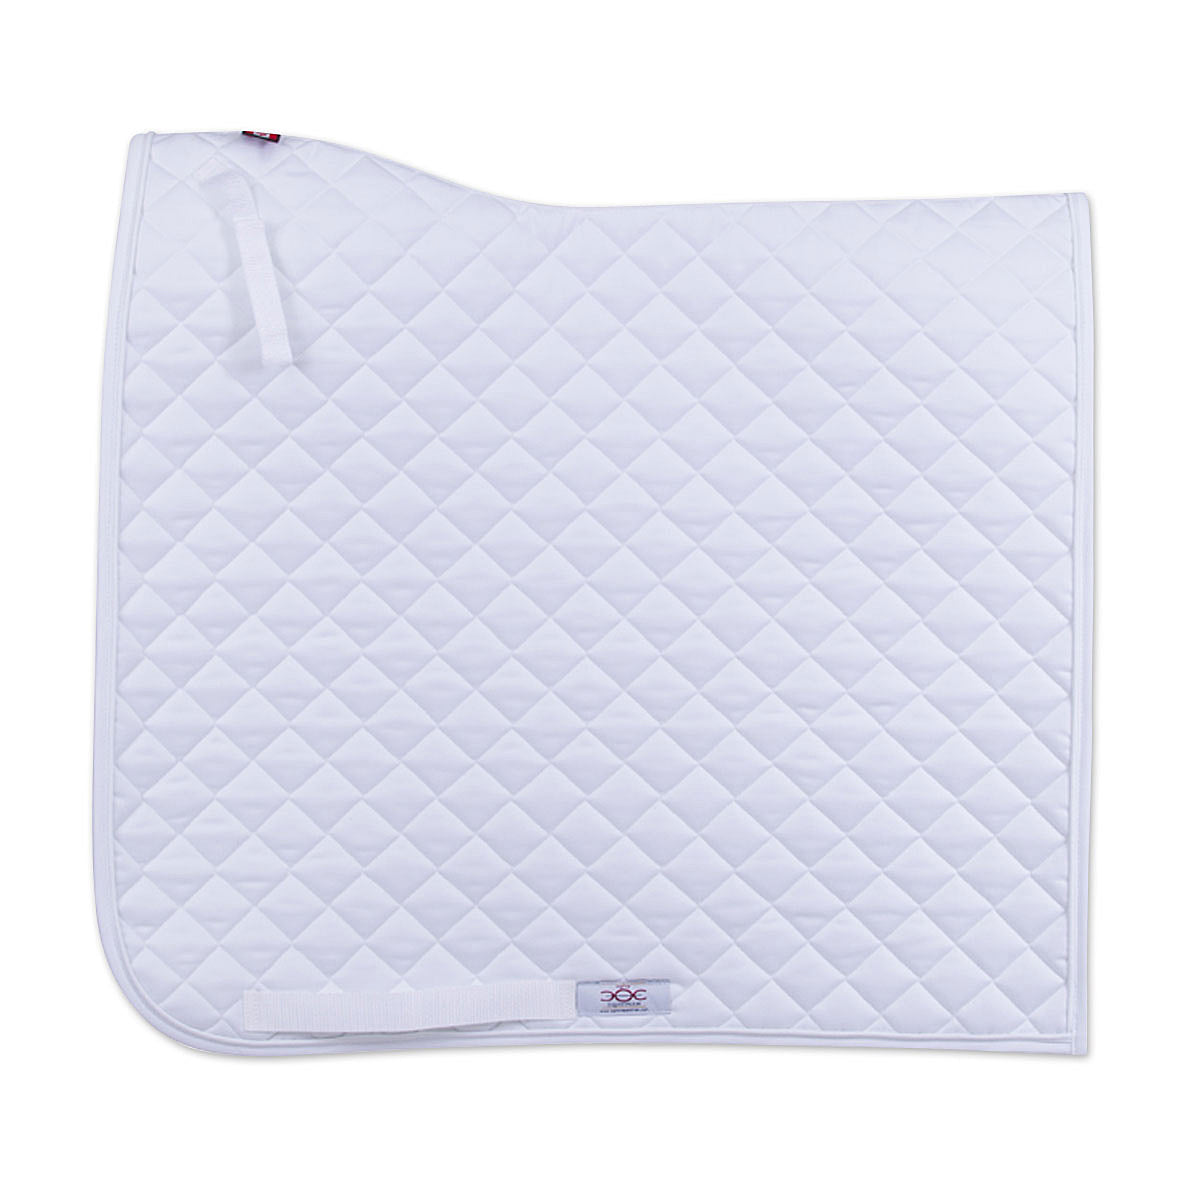 Ogilvy Dressage Profile Pad